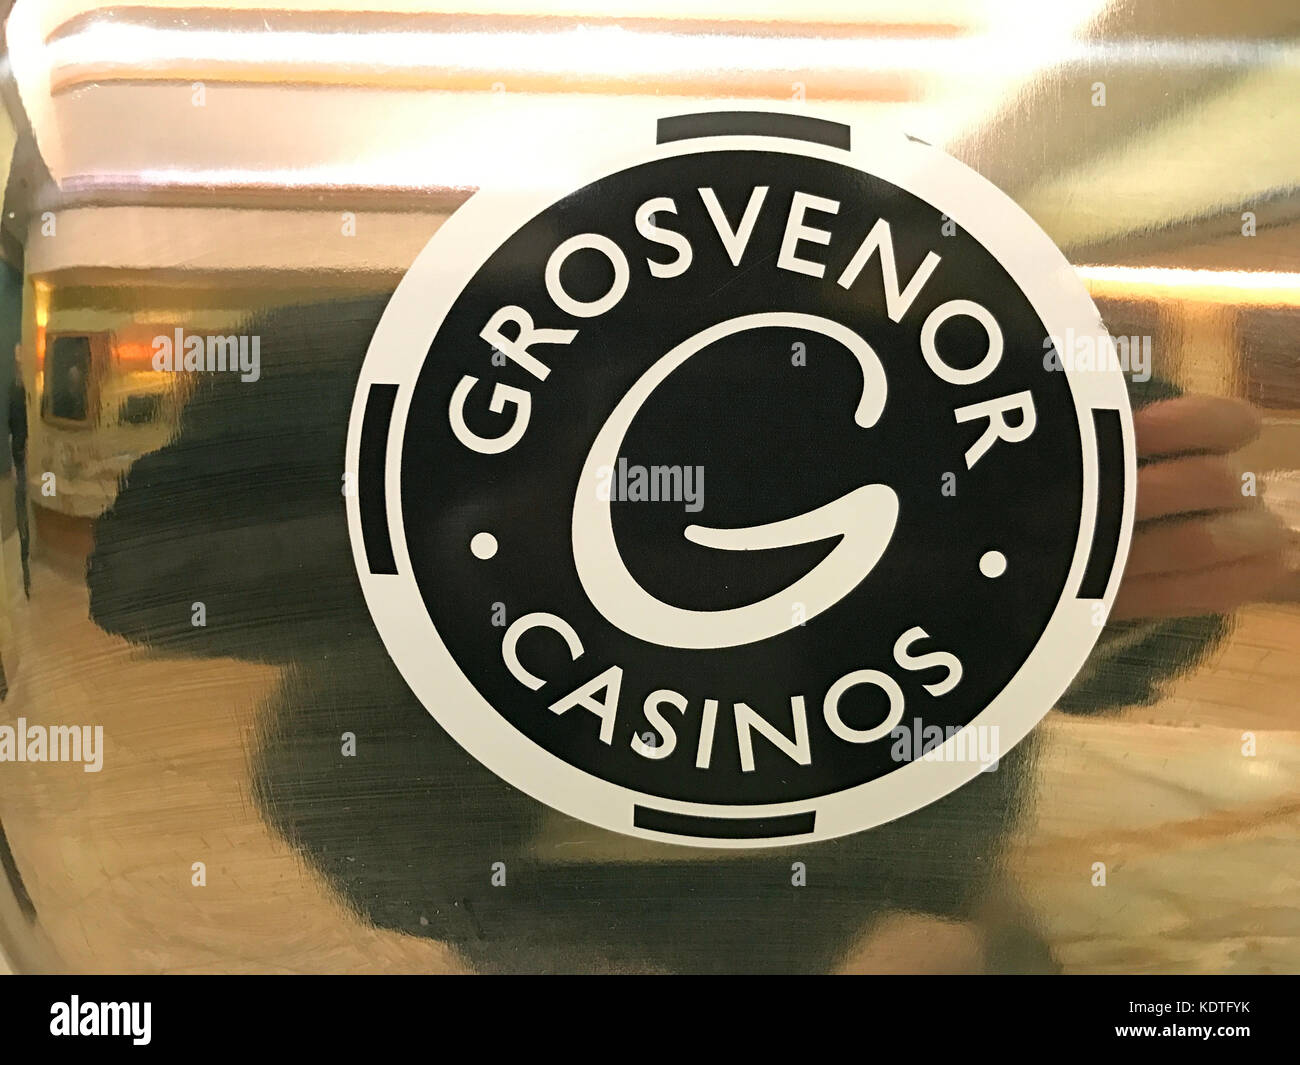 Grosvenor Casino Logo - Stock Image